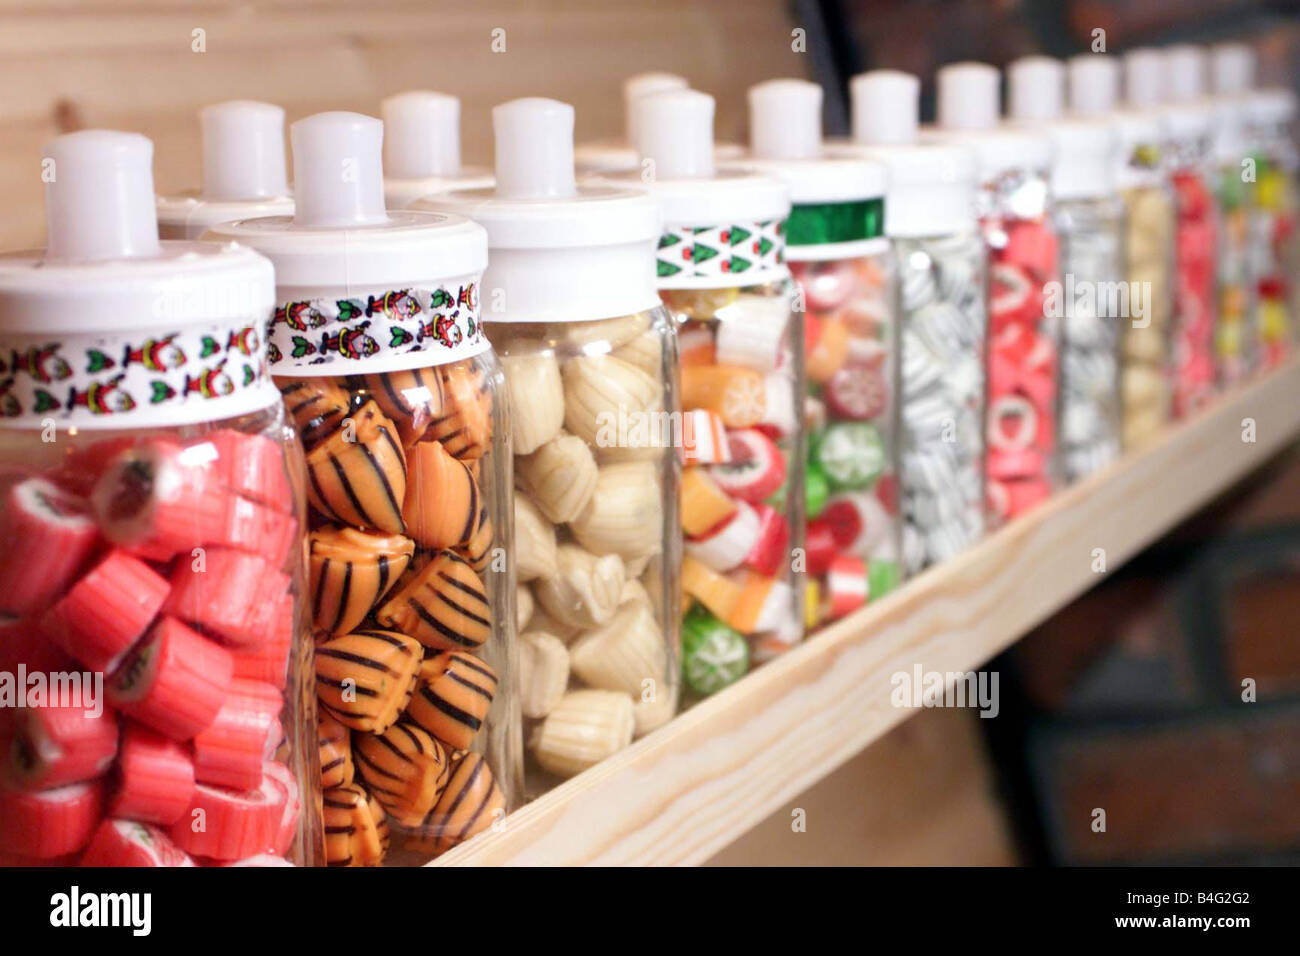 Thousands of sweets in jars line the shelves at Aunt Sandra s Candy Factory In Belfast Northern Ireland March 2002 - Stock Image